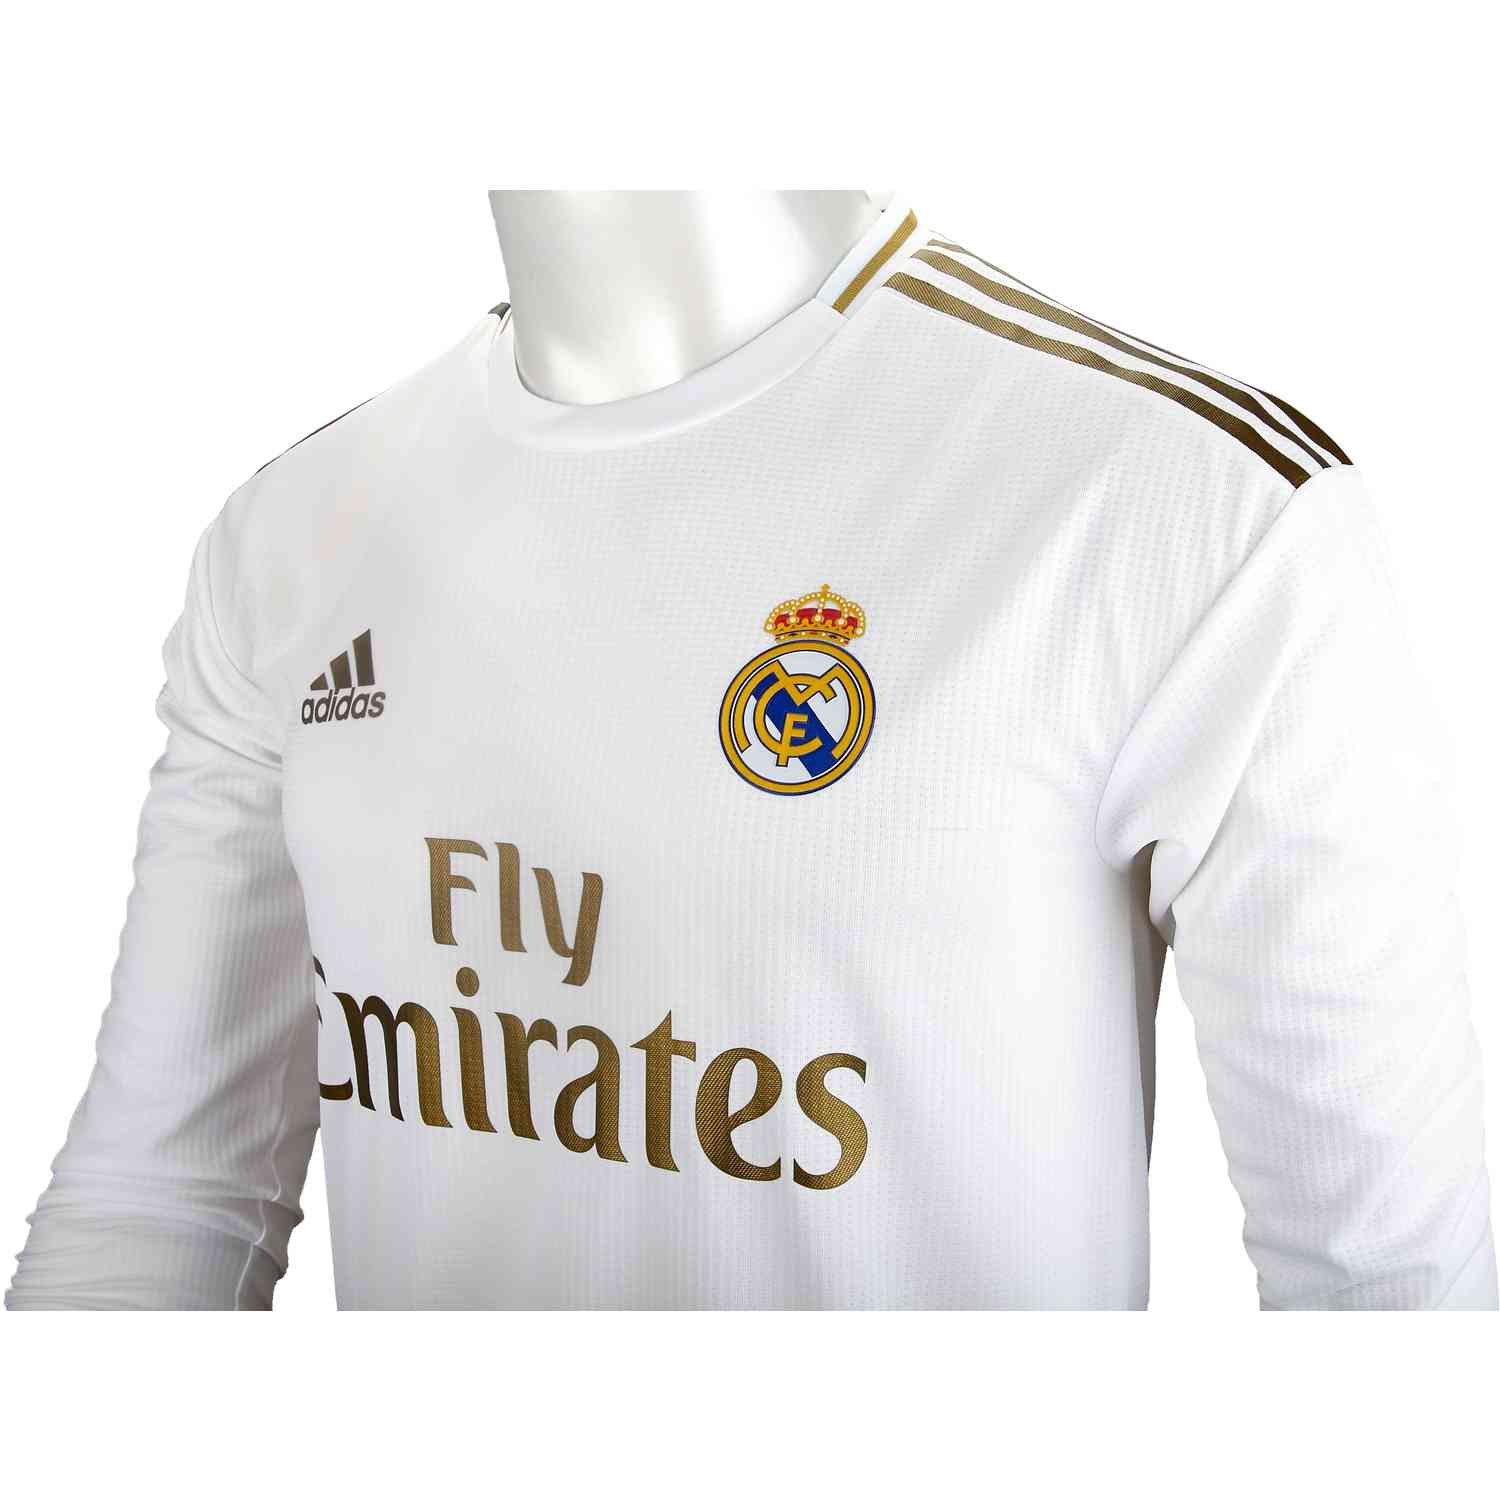 best website f0e51 905e6 2019/20 adidas Luka Modric Real Madrid Home L/S Authentic ...